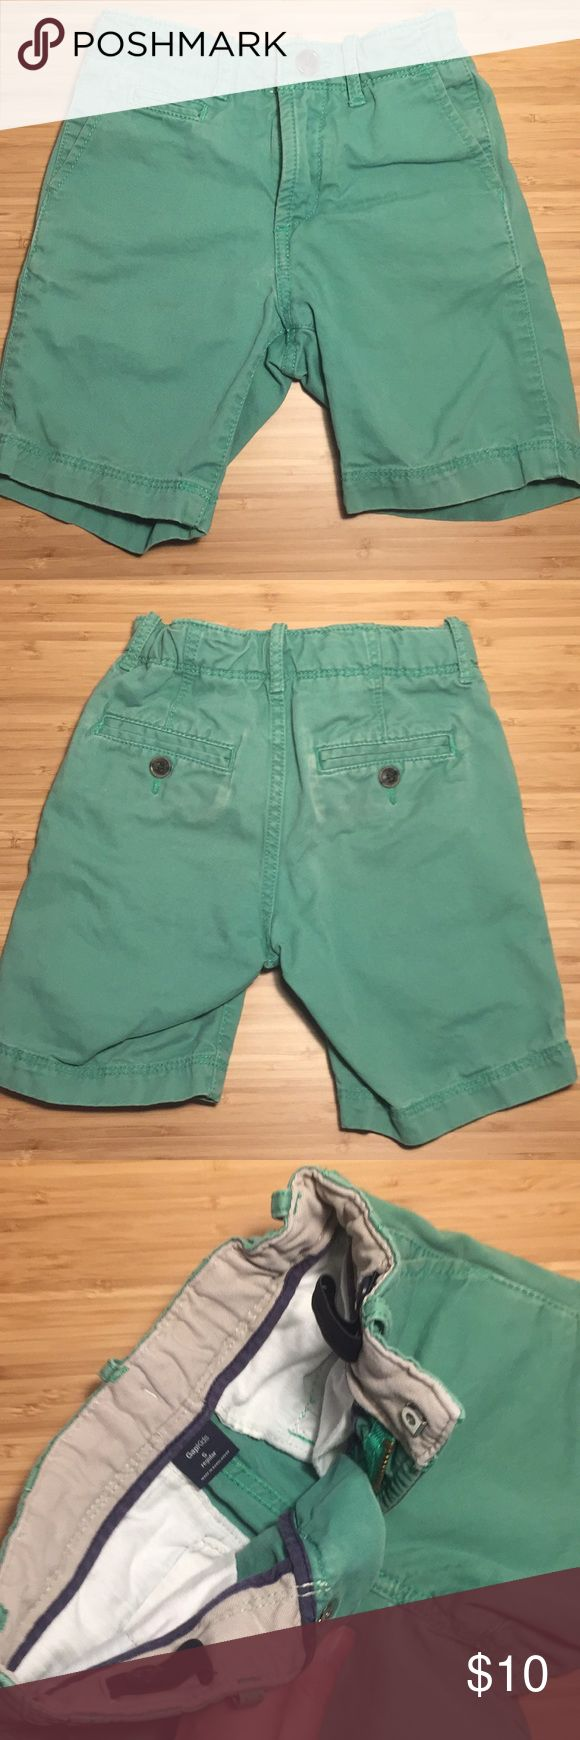 GAP Kids 5 Green Shorts These are a true Kelley green color. Size 5 regular. Gap kids shorts.   * I've got lots of boys clothes and would love to do a deal on a bundle! * GAP Kids Bottoms Shorts